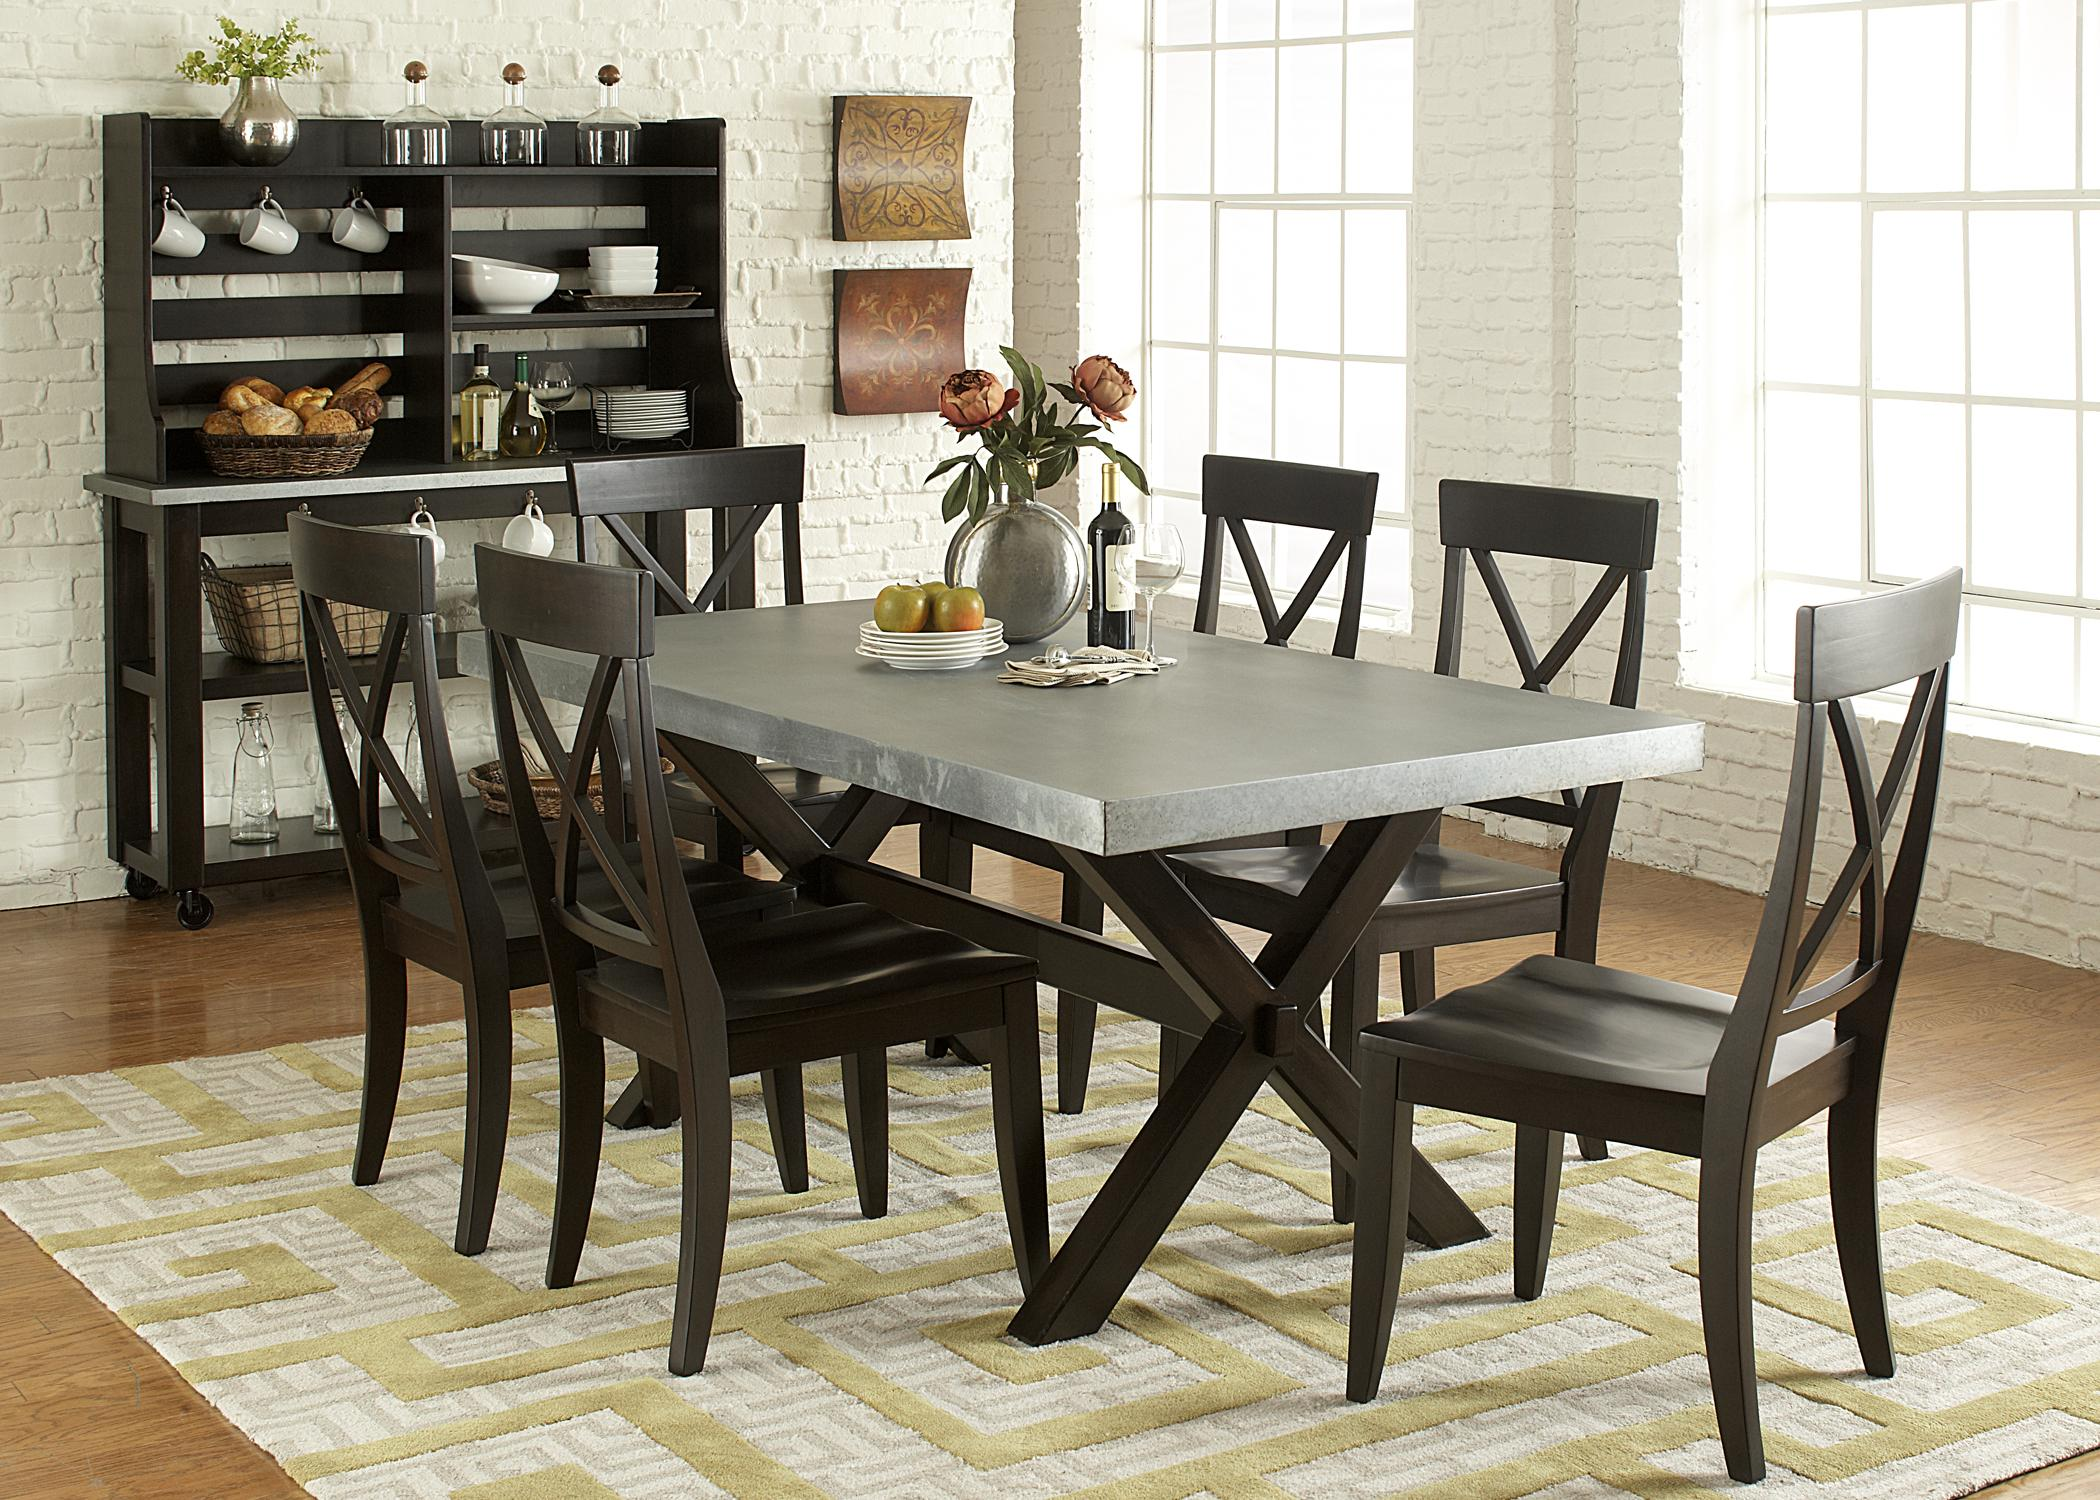 Liberty Furniture Keaton II Dining Room Group 1 - Item Number: 219 Dining Room Group 1